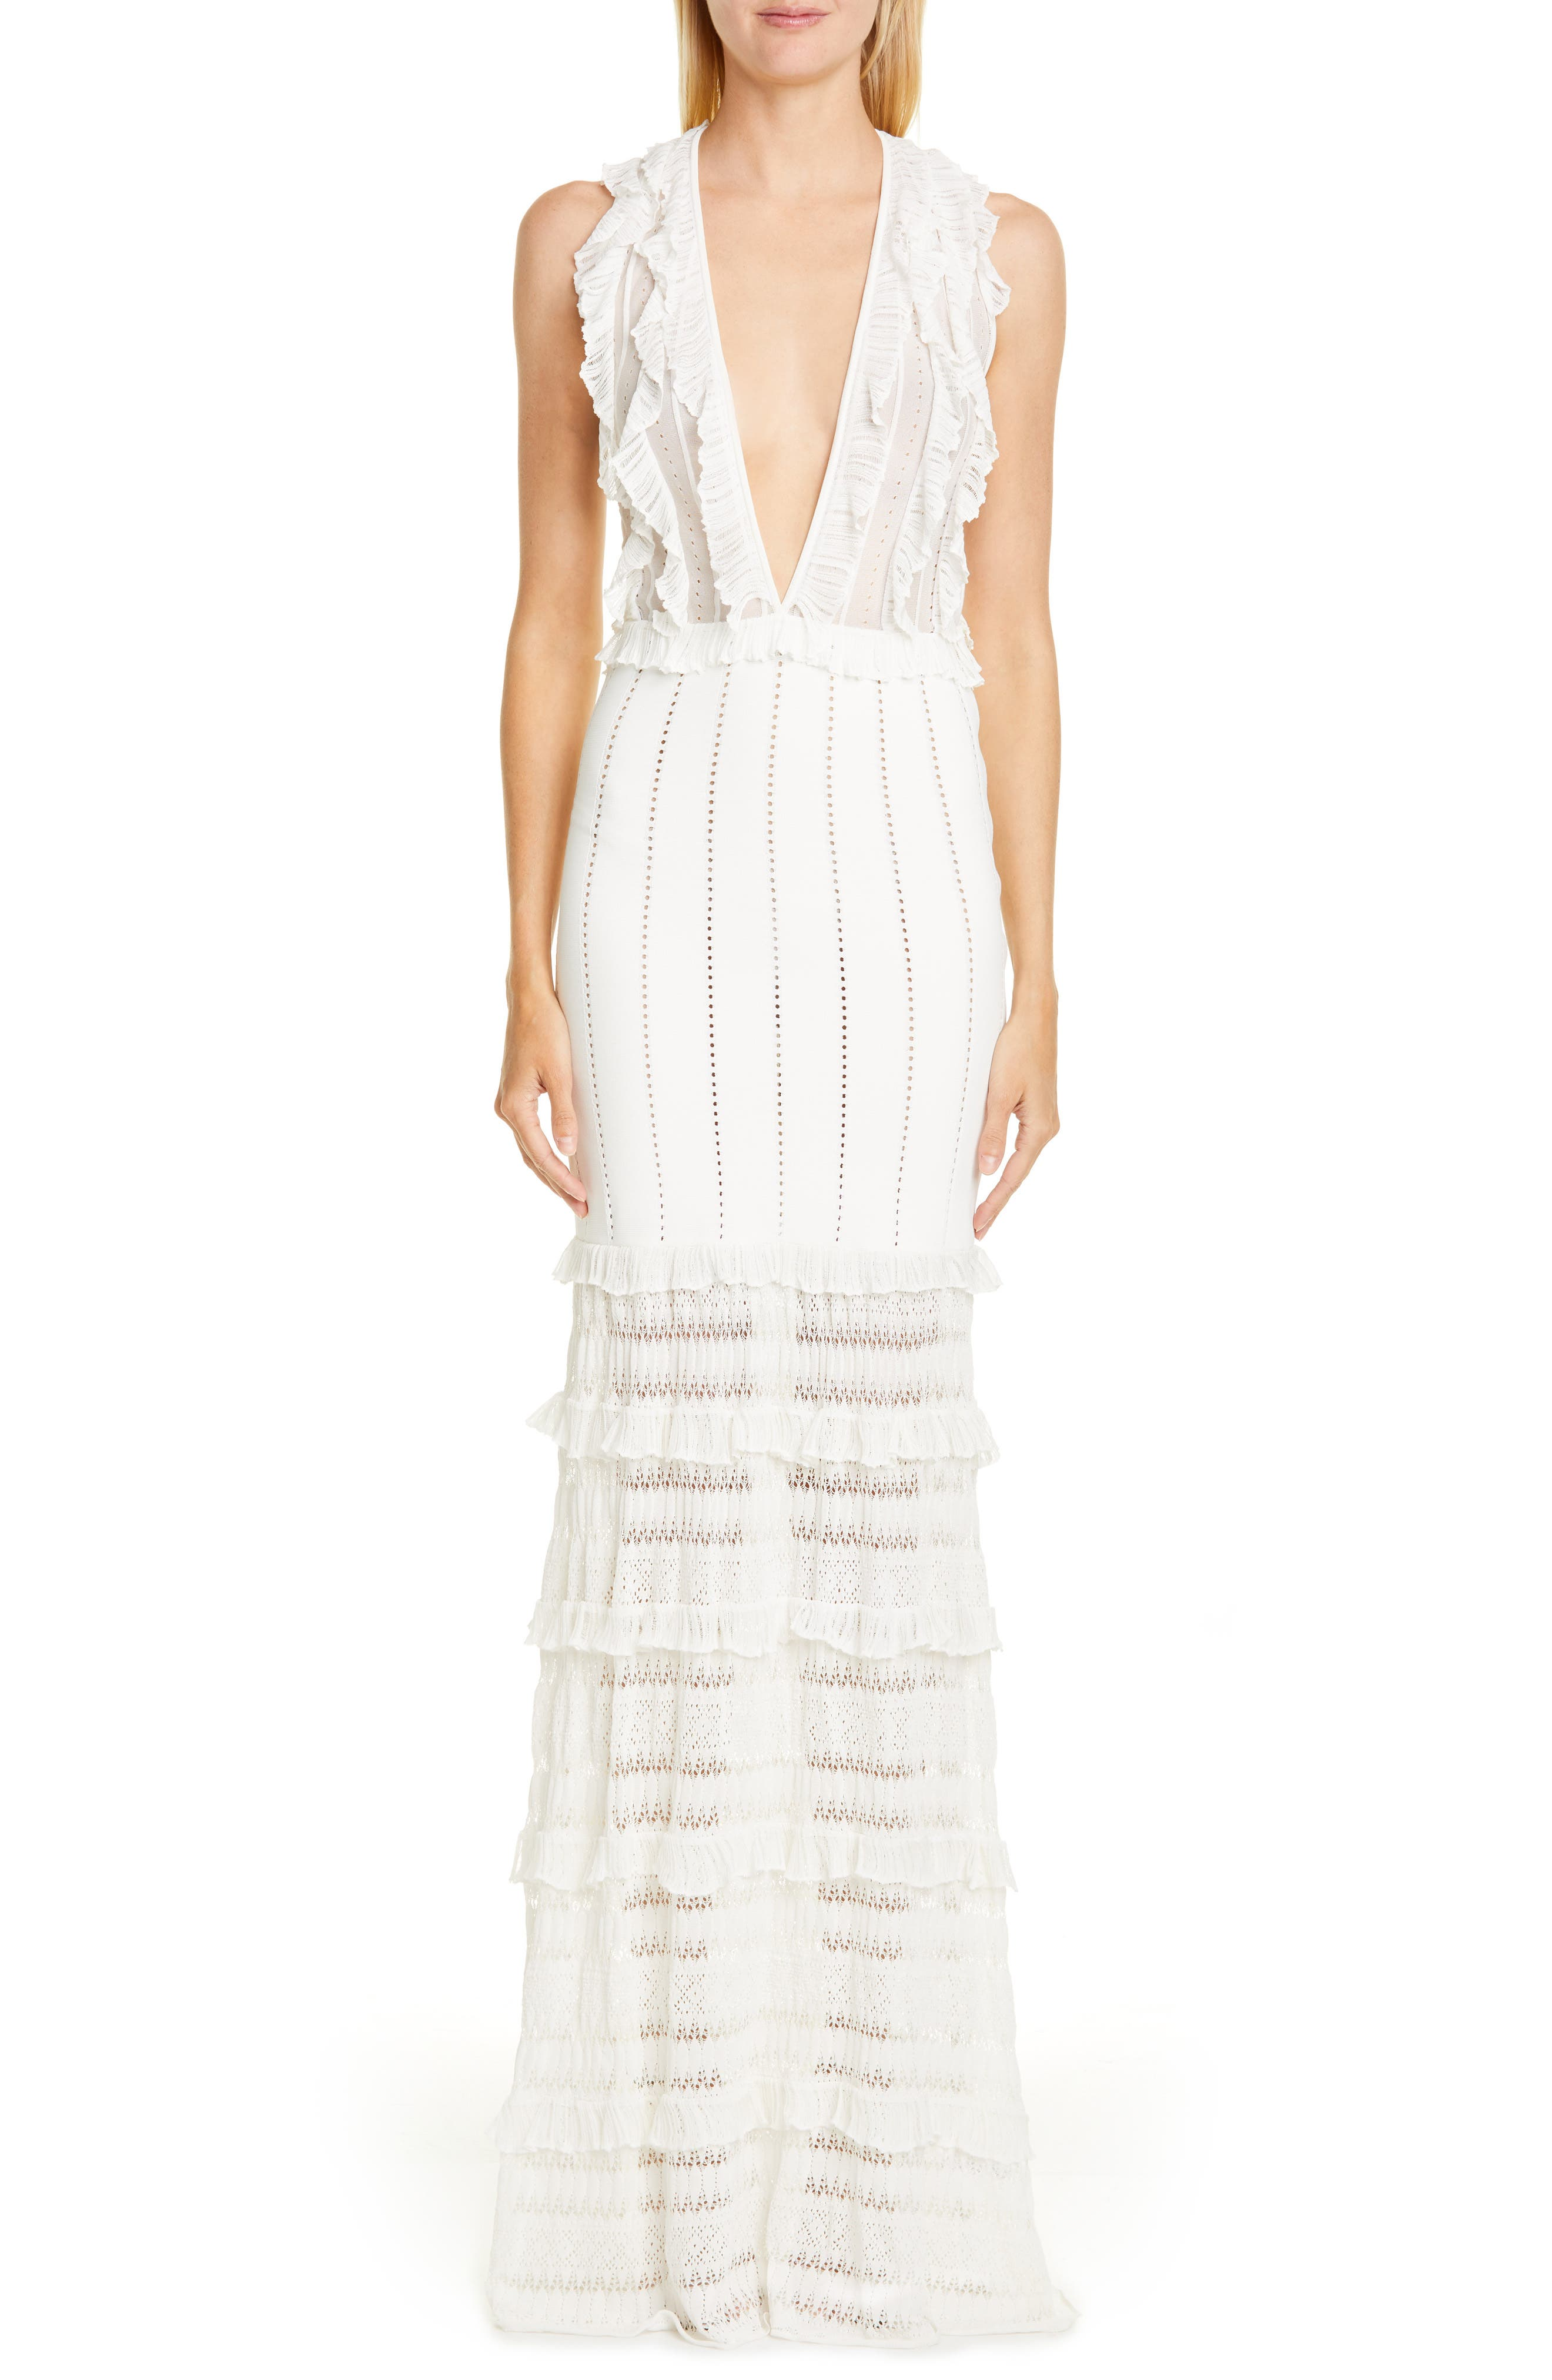 Zuhair Murad Chrysalis Plunge Neck Tiered Knit Gown, 6 FR - White